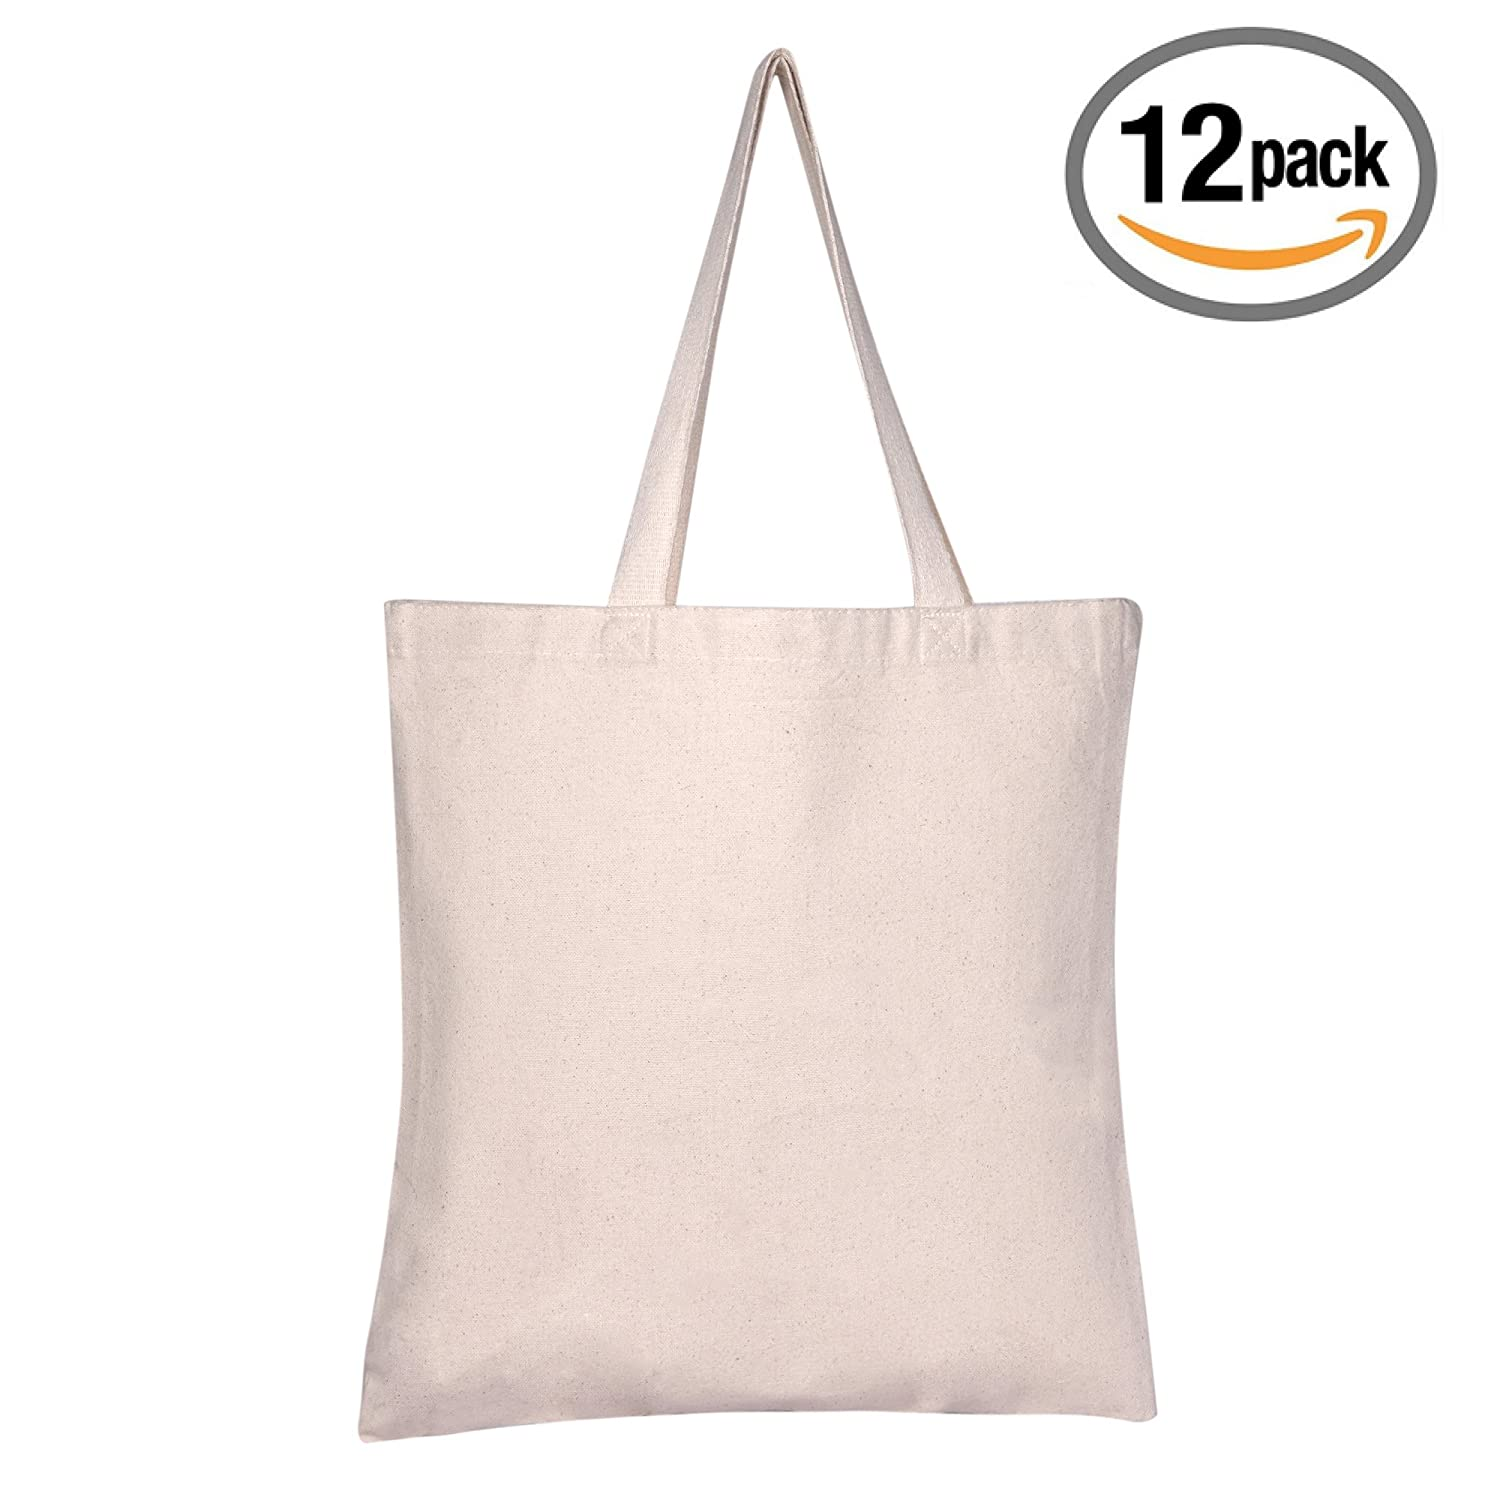 BagzDepot Eco-Friendly Economical 100% Cotton Reusable Customizable Wholesale Grocery Tote Bag 15W x 16H 21 Handles (Natural) by BagzDepot B01GAPU4Y0 ナチュラル ナチュラル